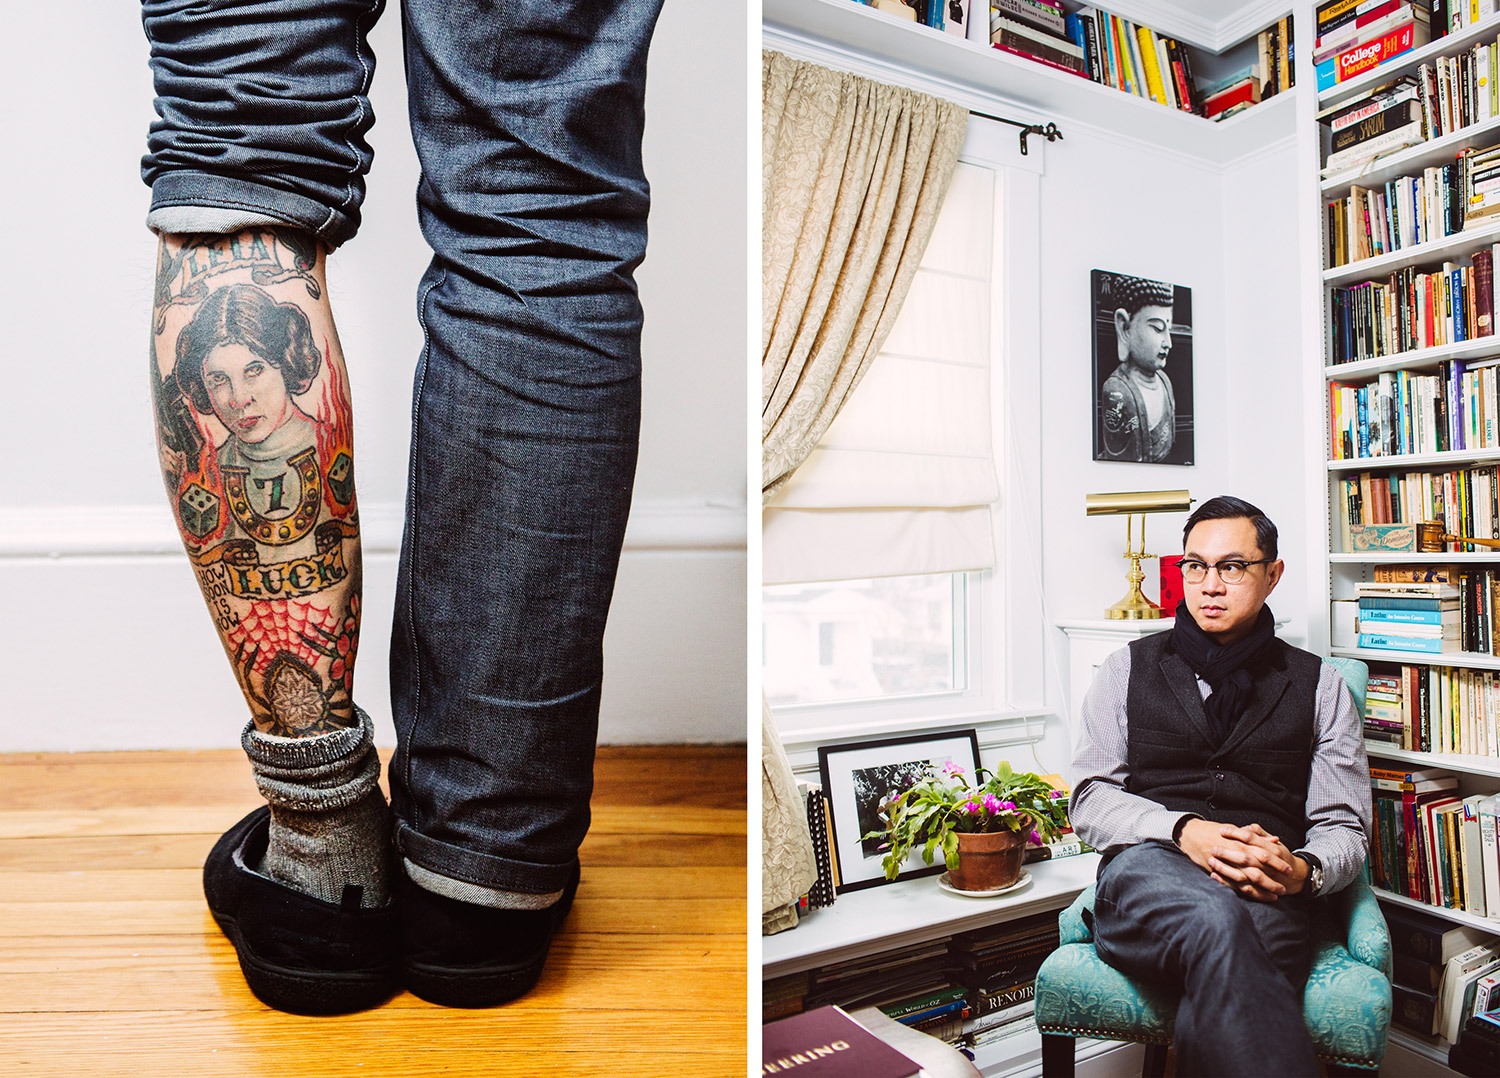 """Star War"" fan Phuc Tran, a Latin teacher and co-owner of Tsunami Tattoo, shows off Princess Leia tattoo at his home in Portland."